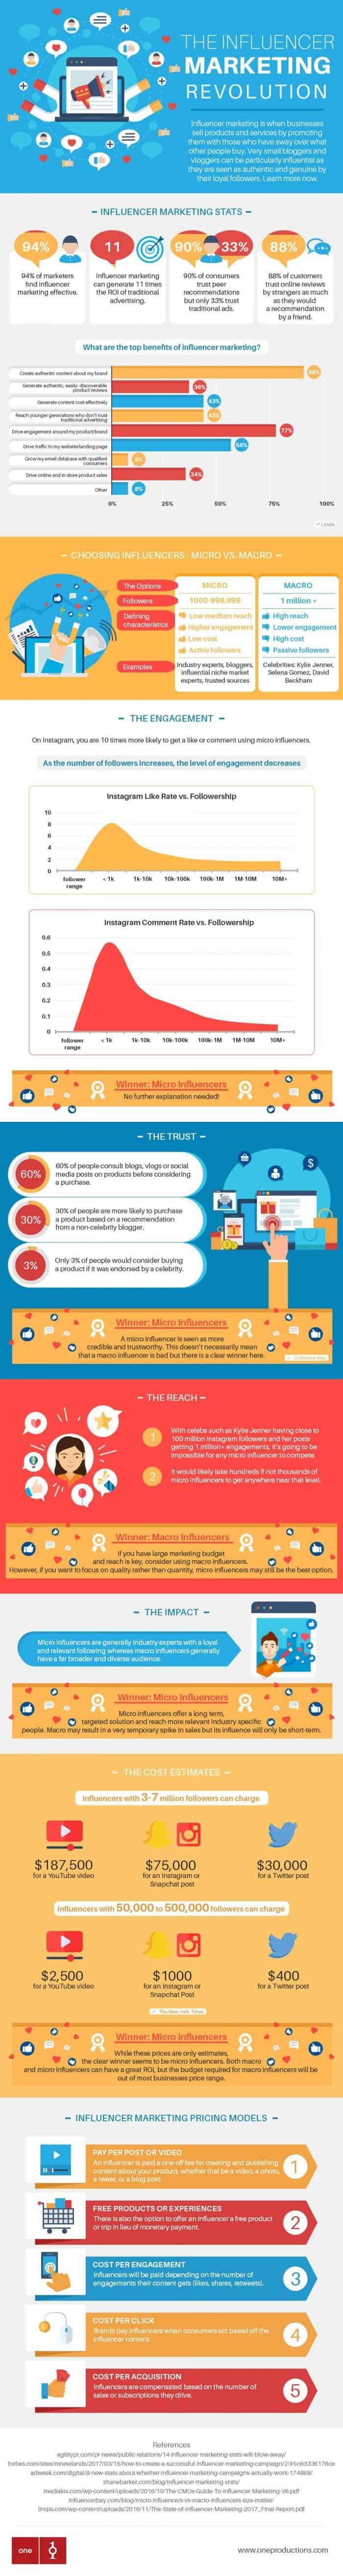 infographic describes influencer marketing industry and why it's valuable for companies